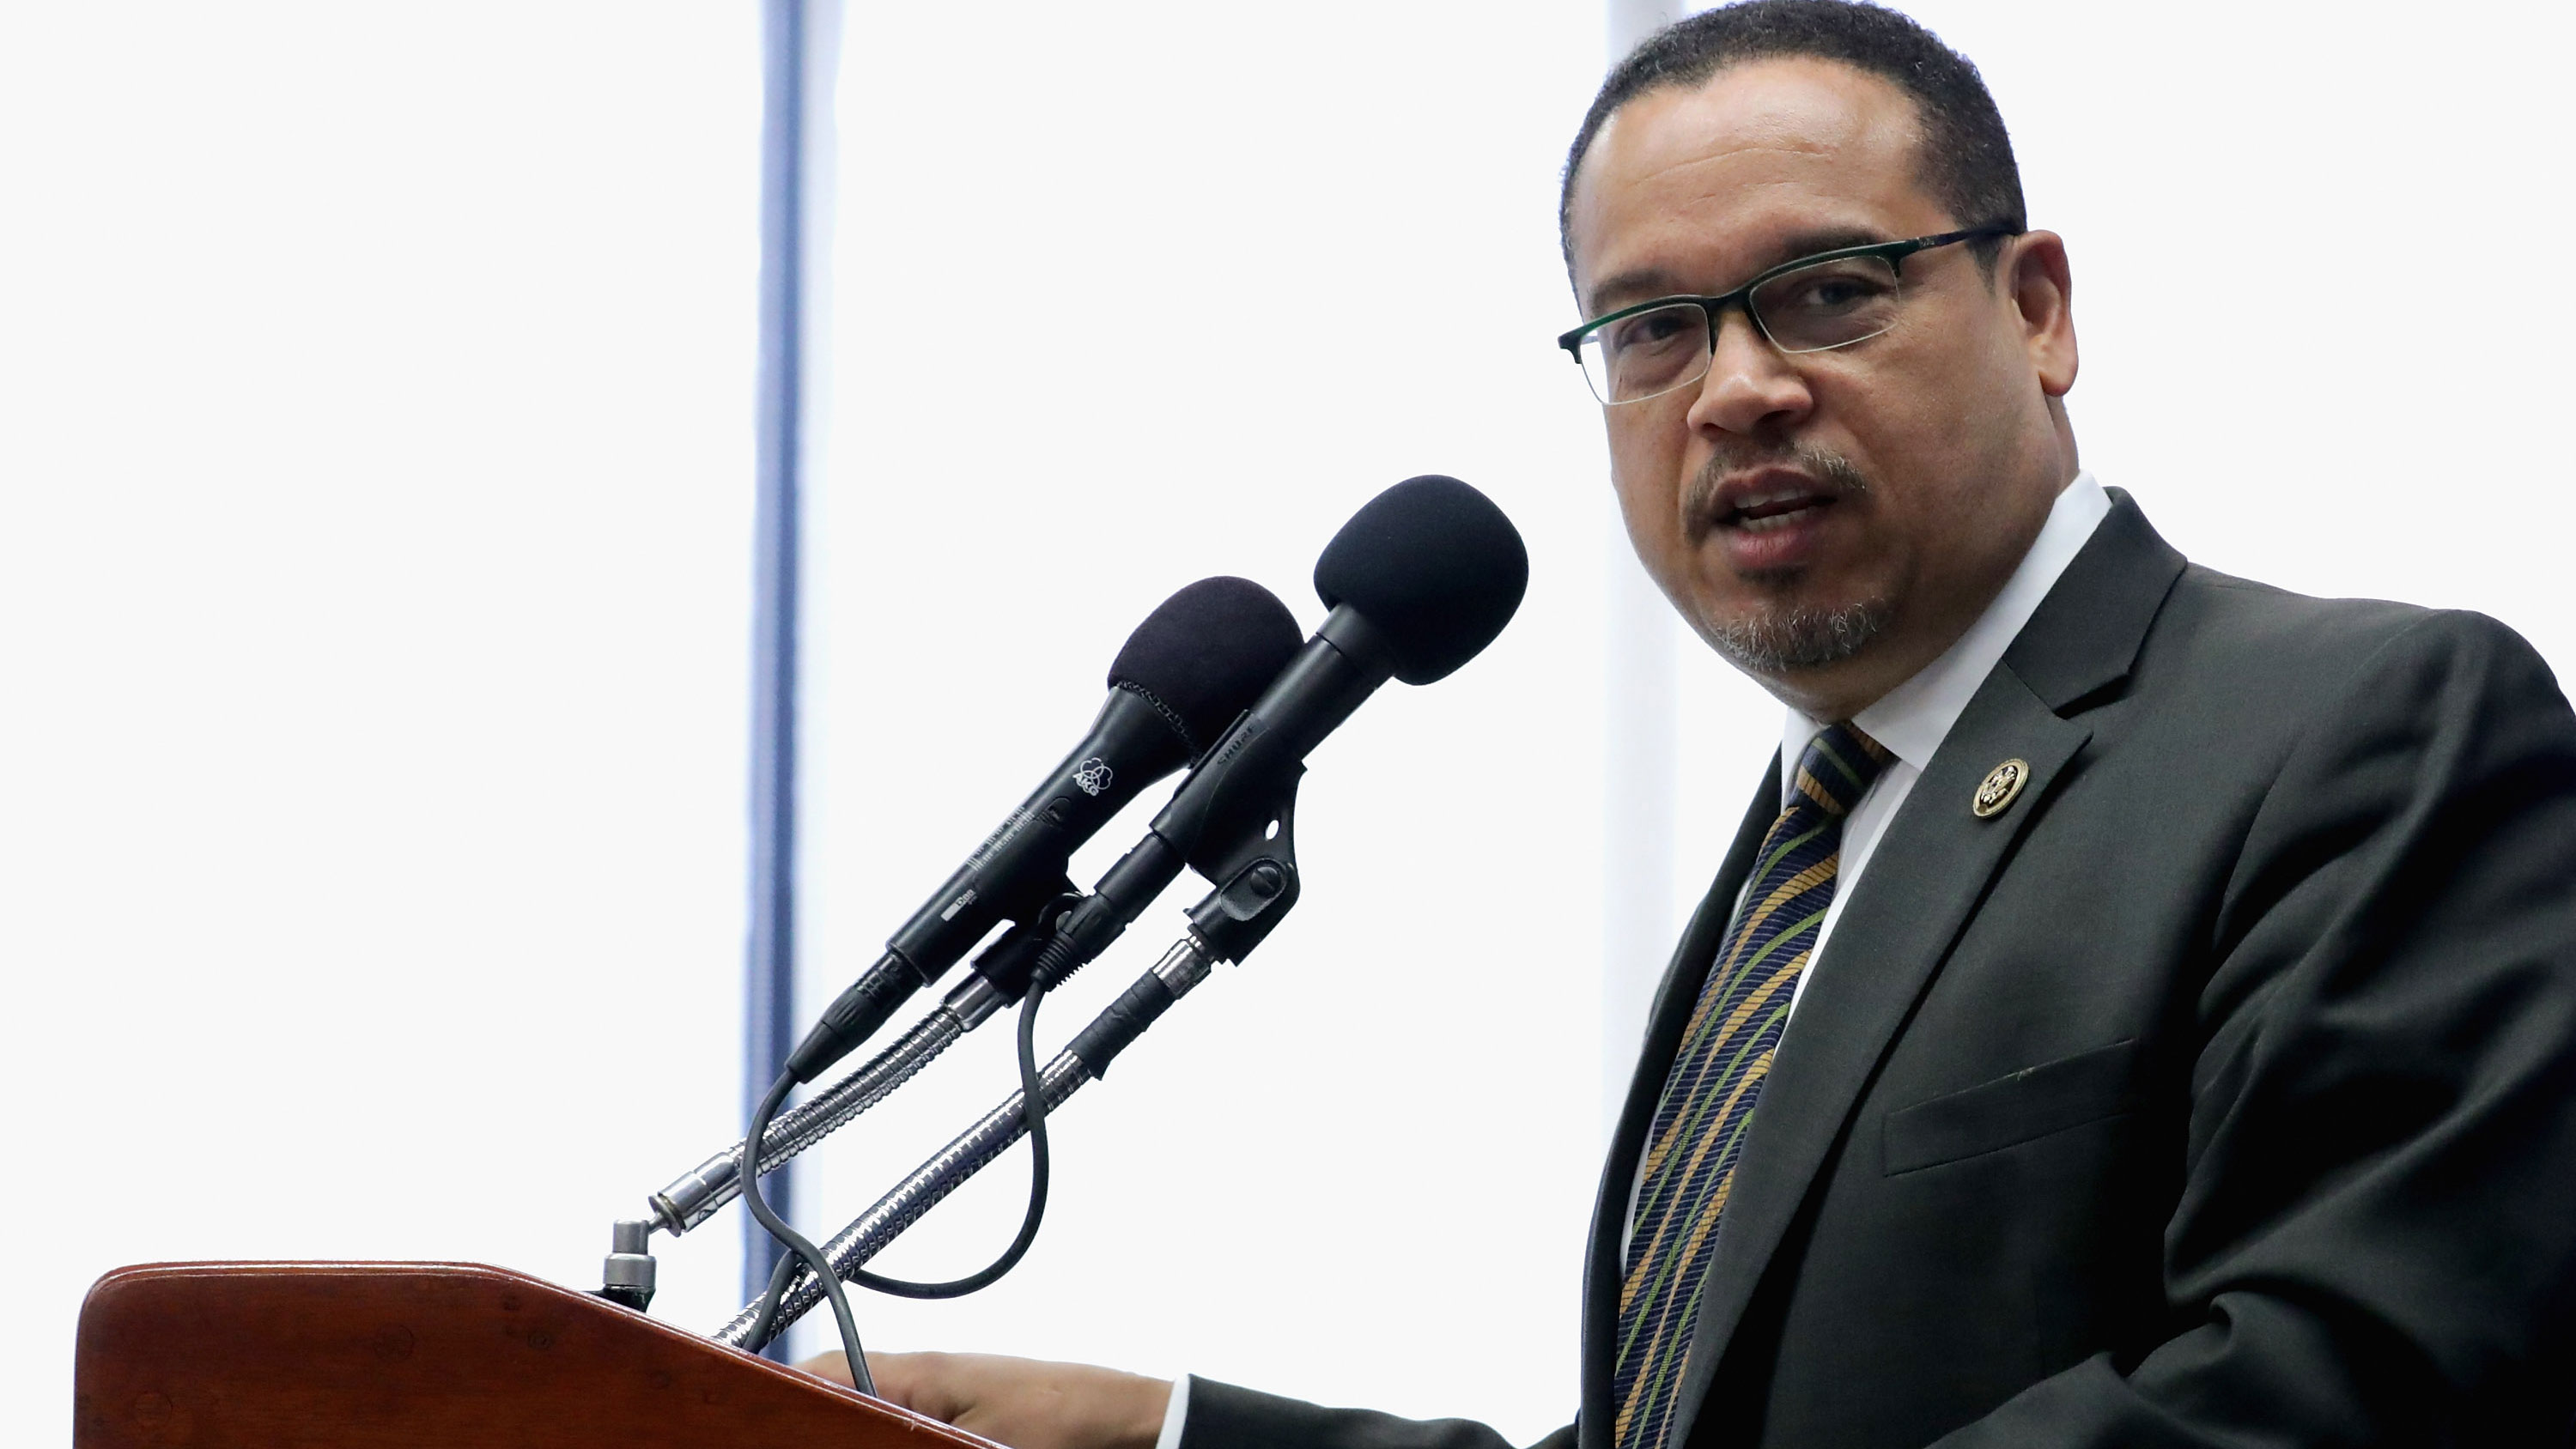 Minnesota Attorney General Ellison cautions against rush to charge officers as he takes over Floyd case